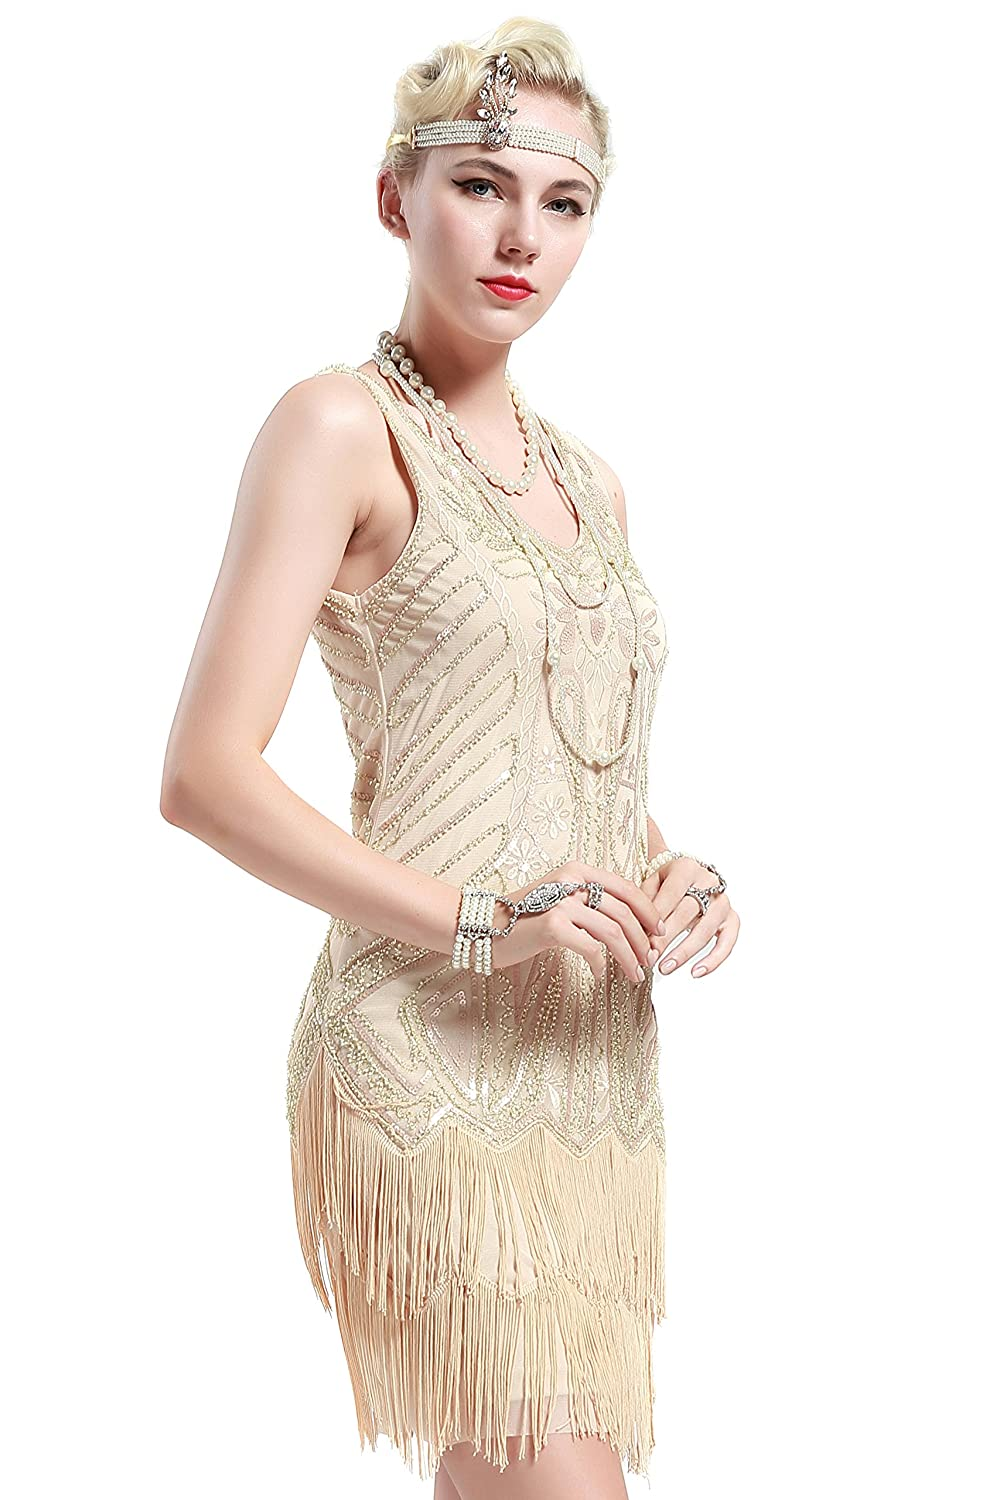 Flapper Dresses & Quality Flapper Costumes Flapper Dresses 1920s V Neck Beaded Fringed Great Gatsby Dress $28.99 AT vintagedancer.com